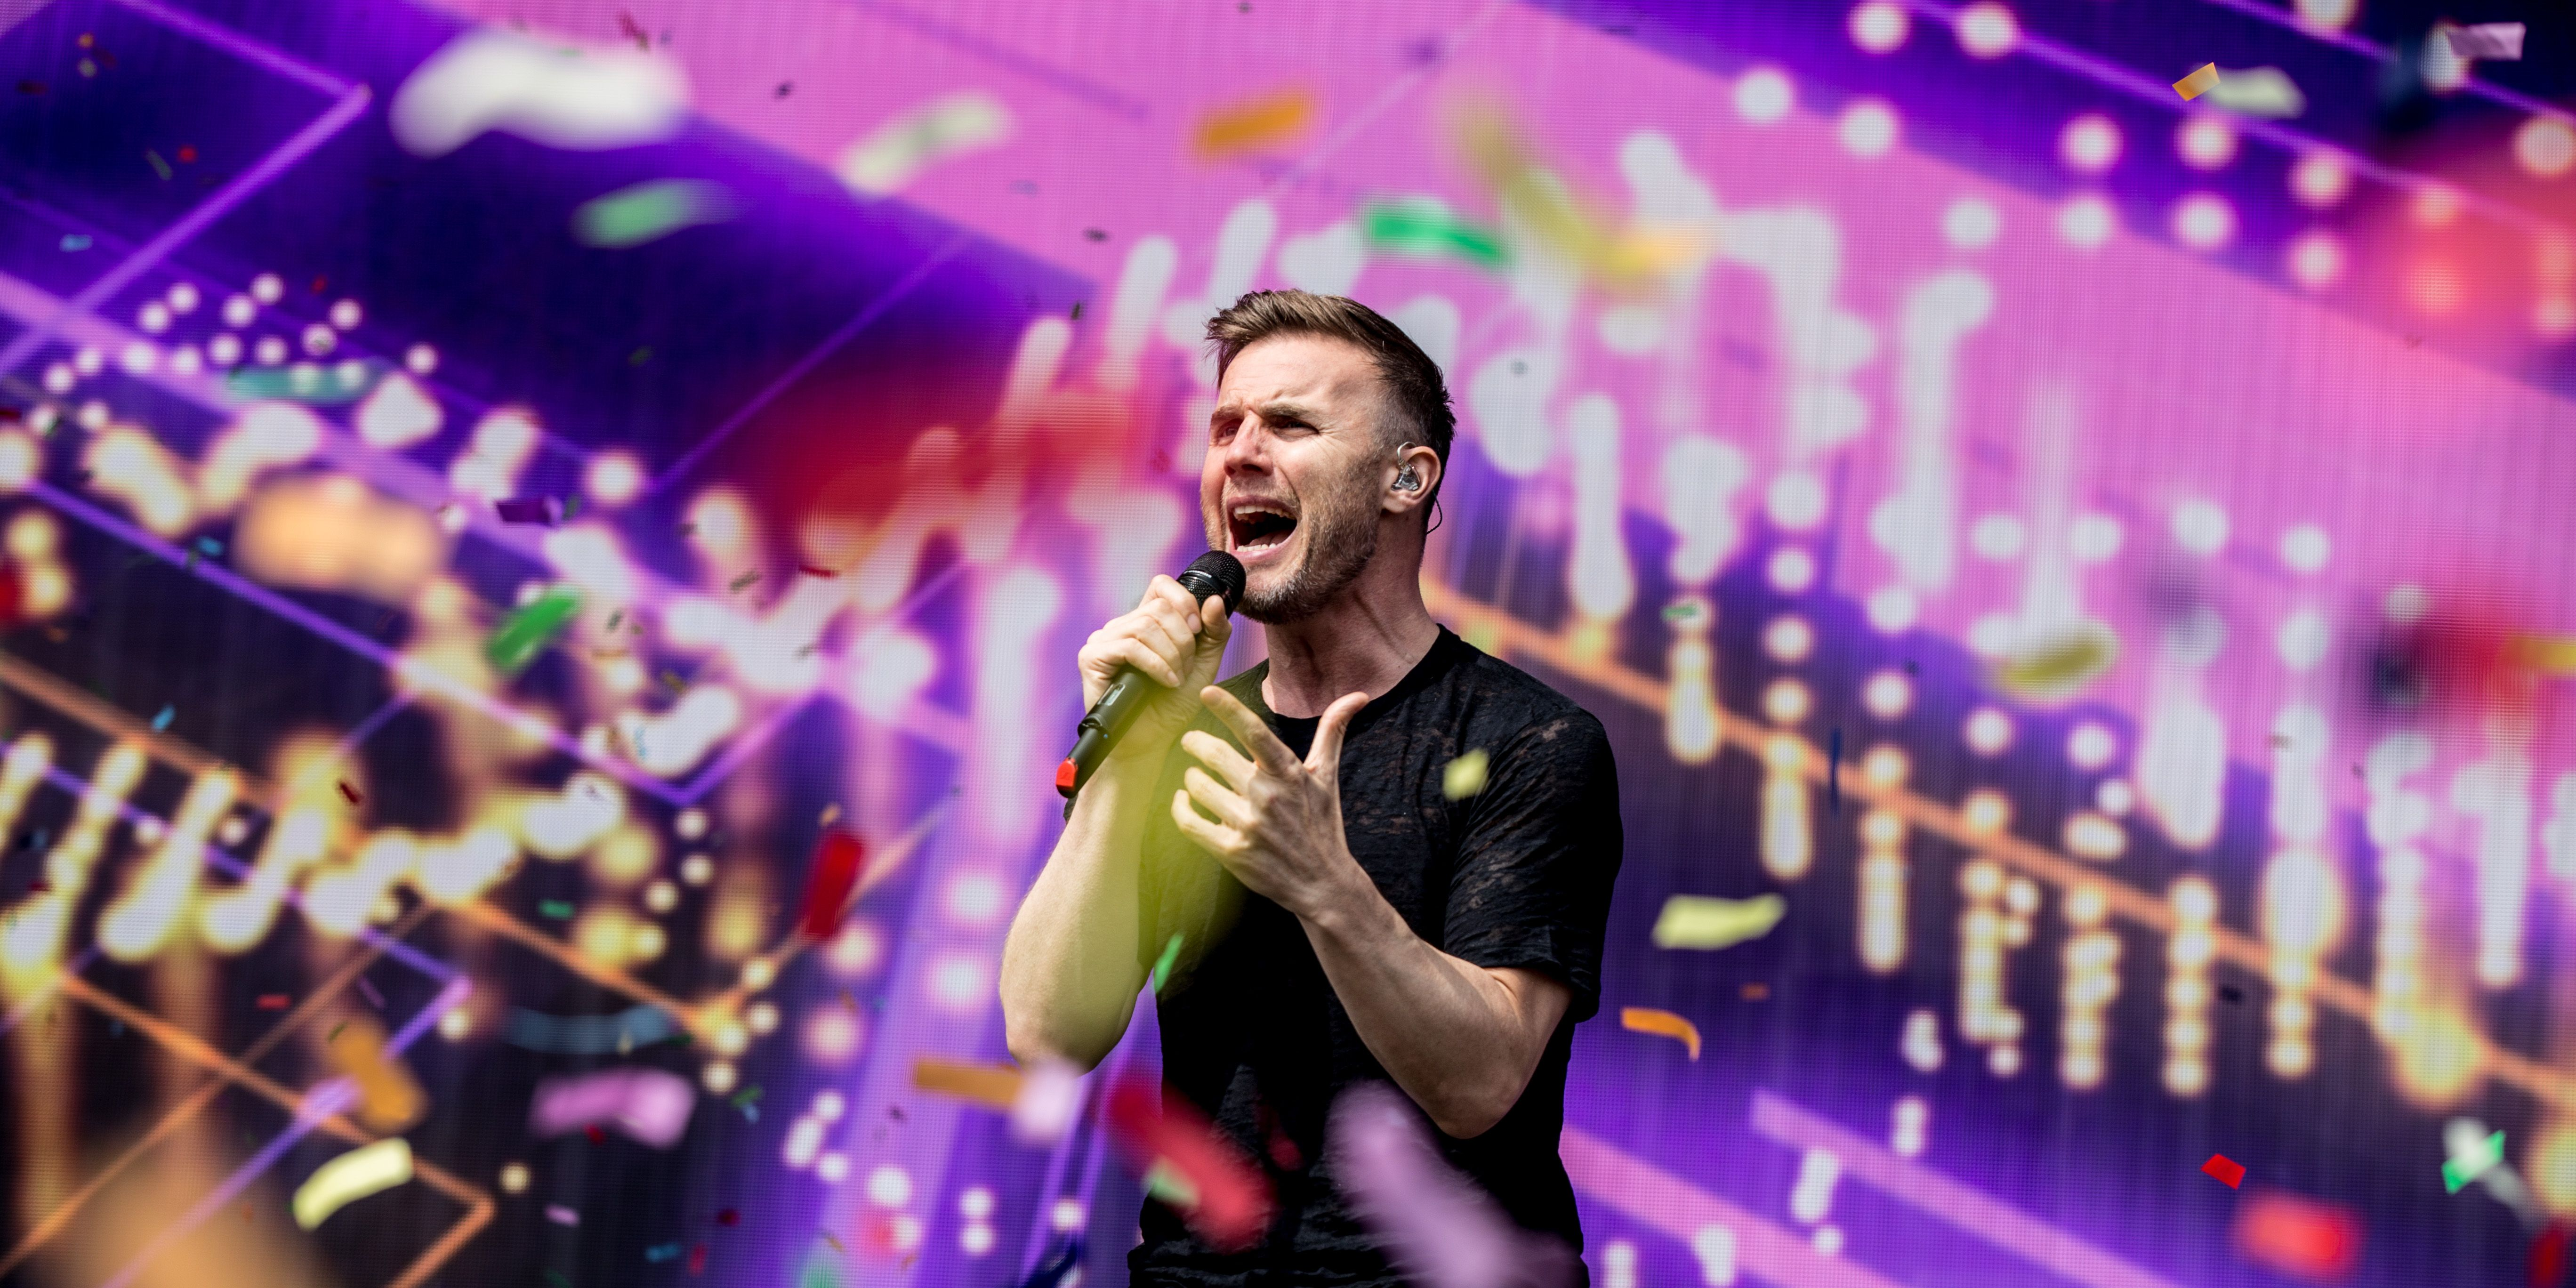 Gary Barlow performs with Take That at Radio 1's Big Weekend